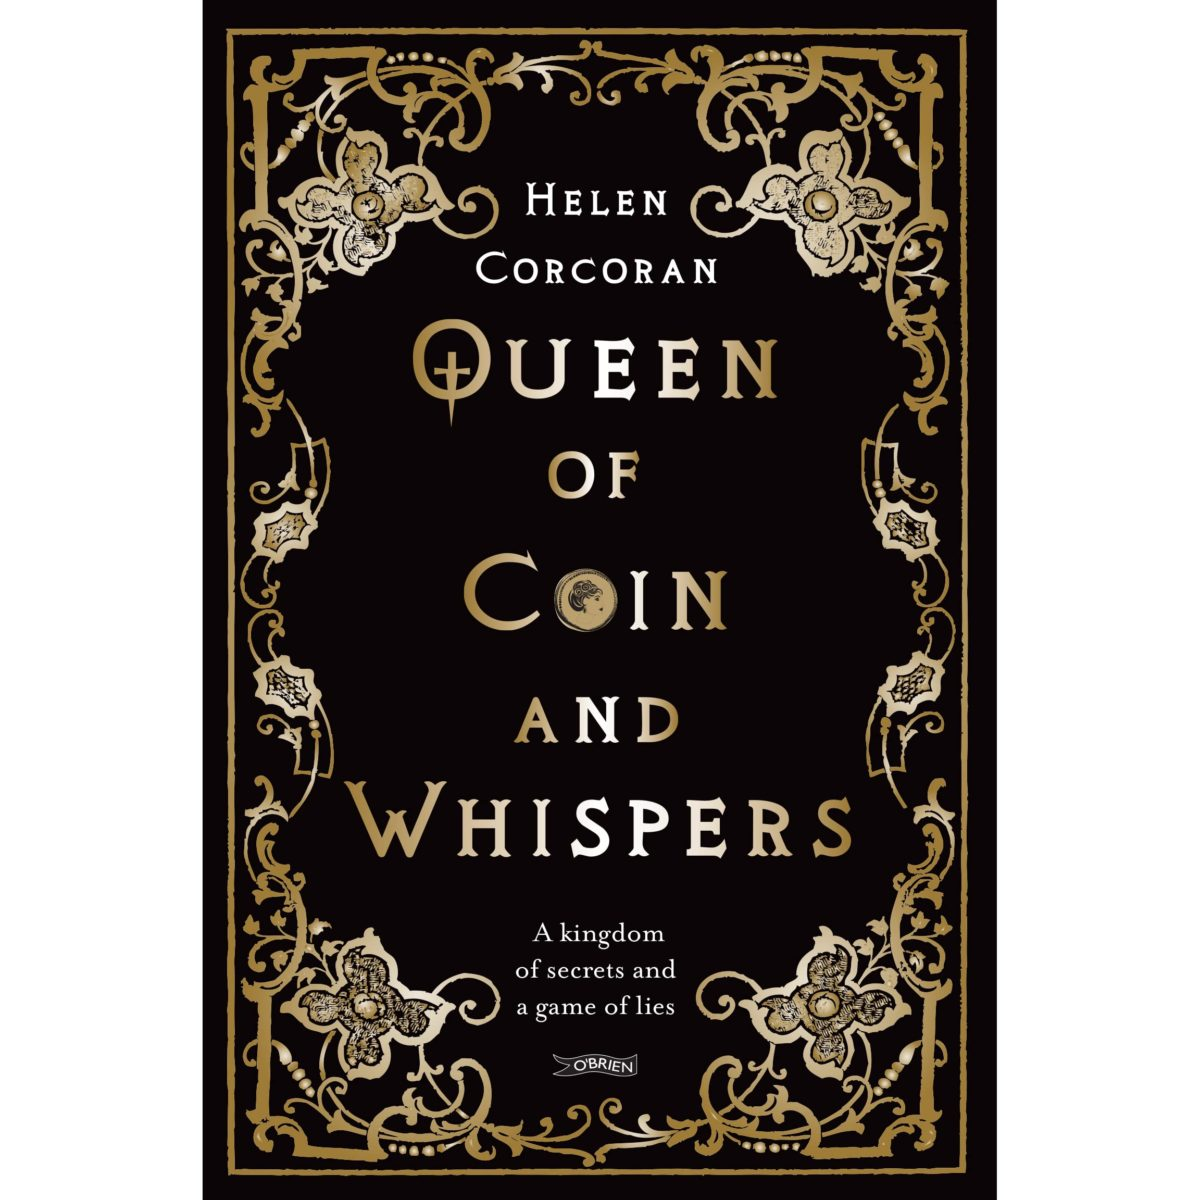 Queen of Coin and Whispers' Isn't Just a Book; It's an Immersive Experience  - the Roarbots